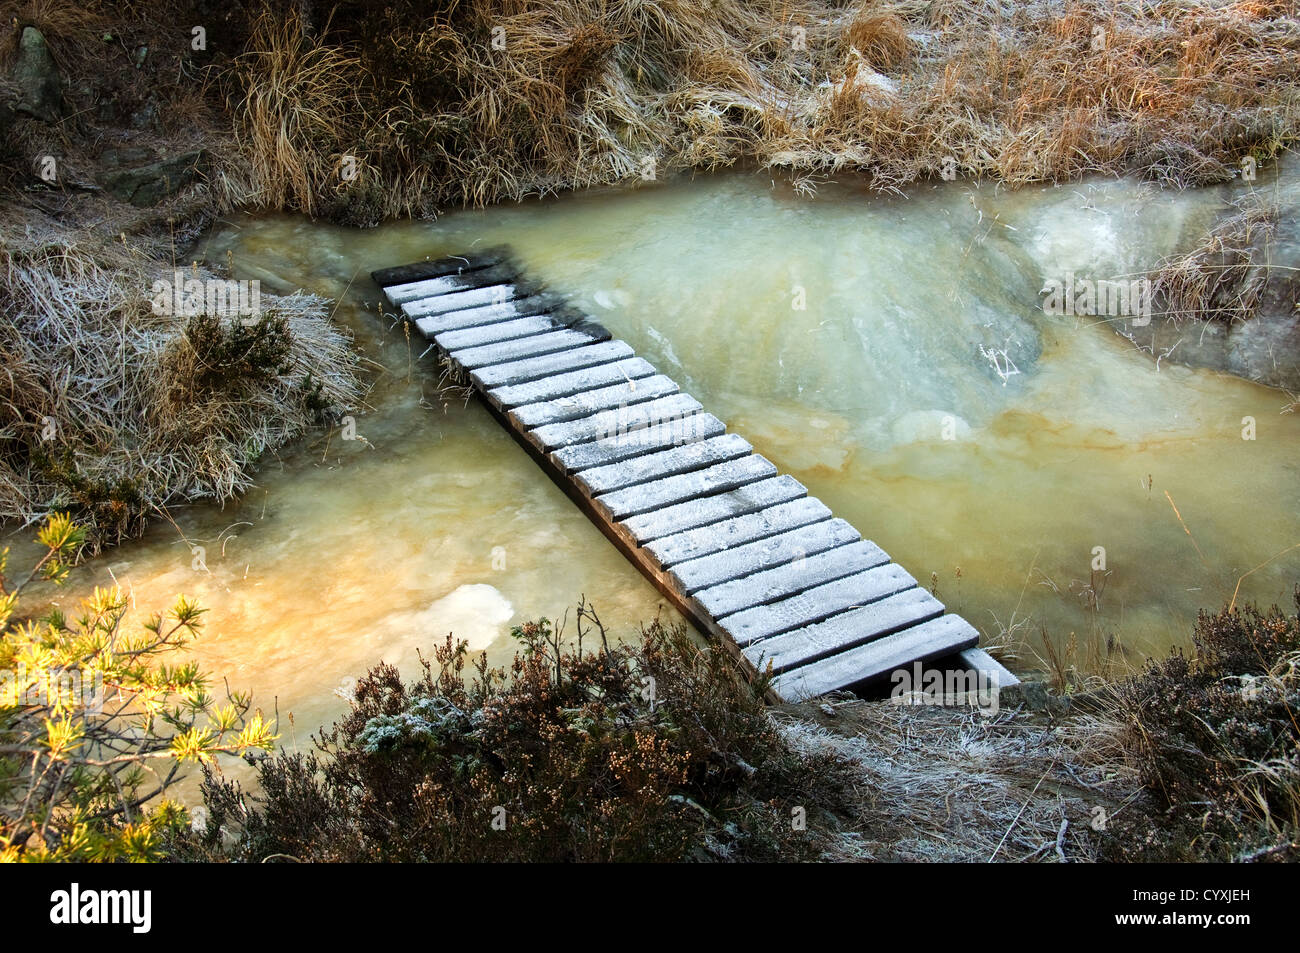 A wooden bridge over an icy stream - Stock Image